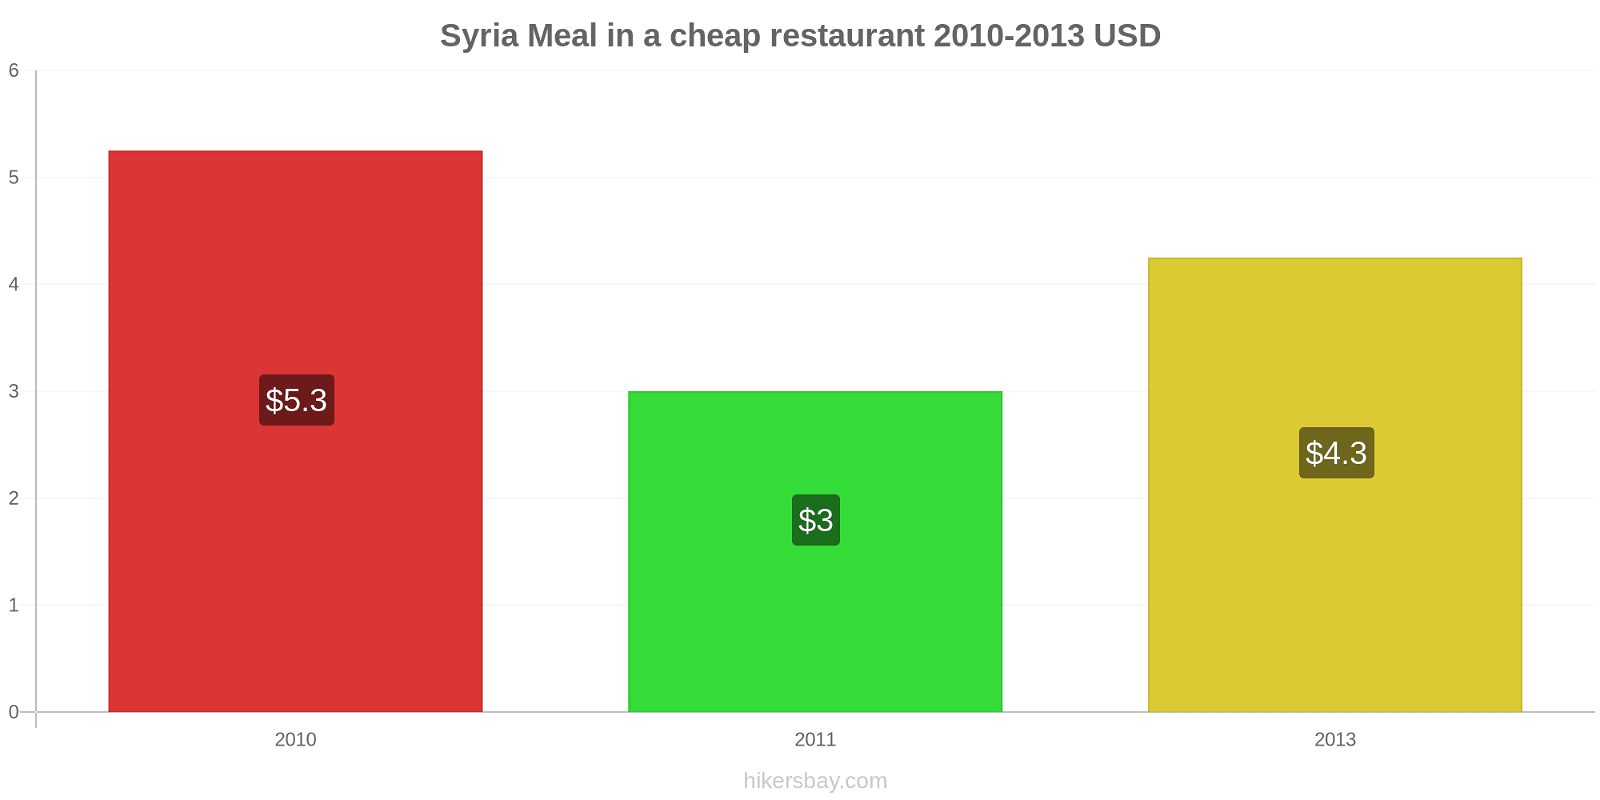 Syria price changes Meal in a cheap restaurant hikersbay.com